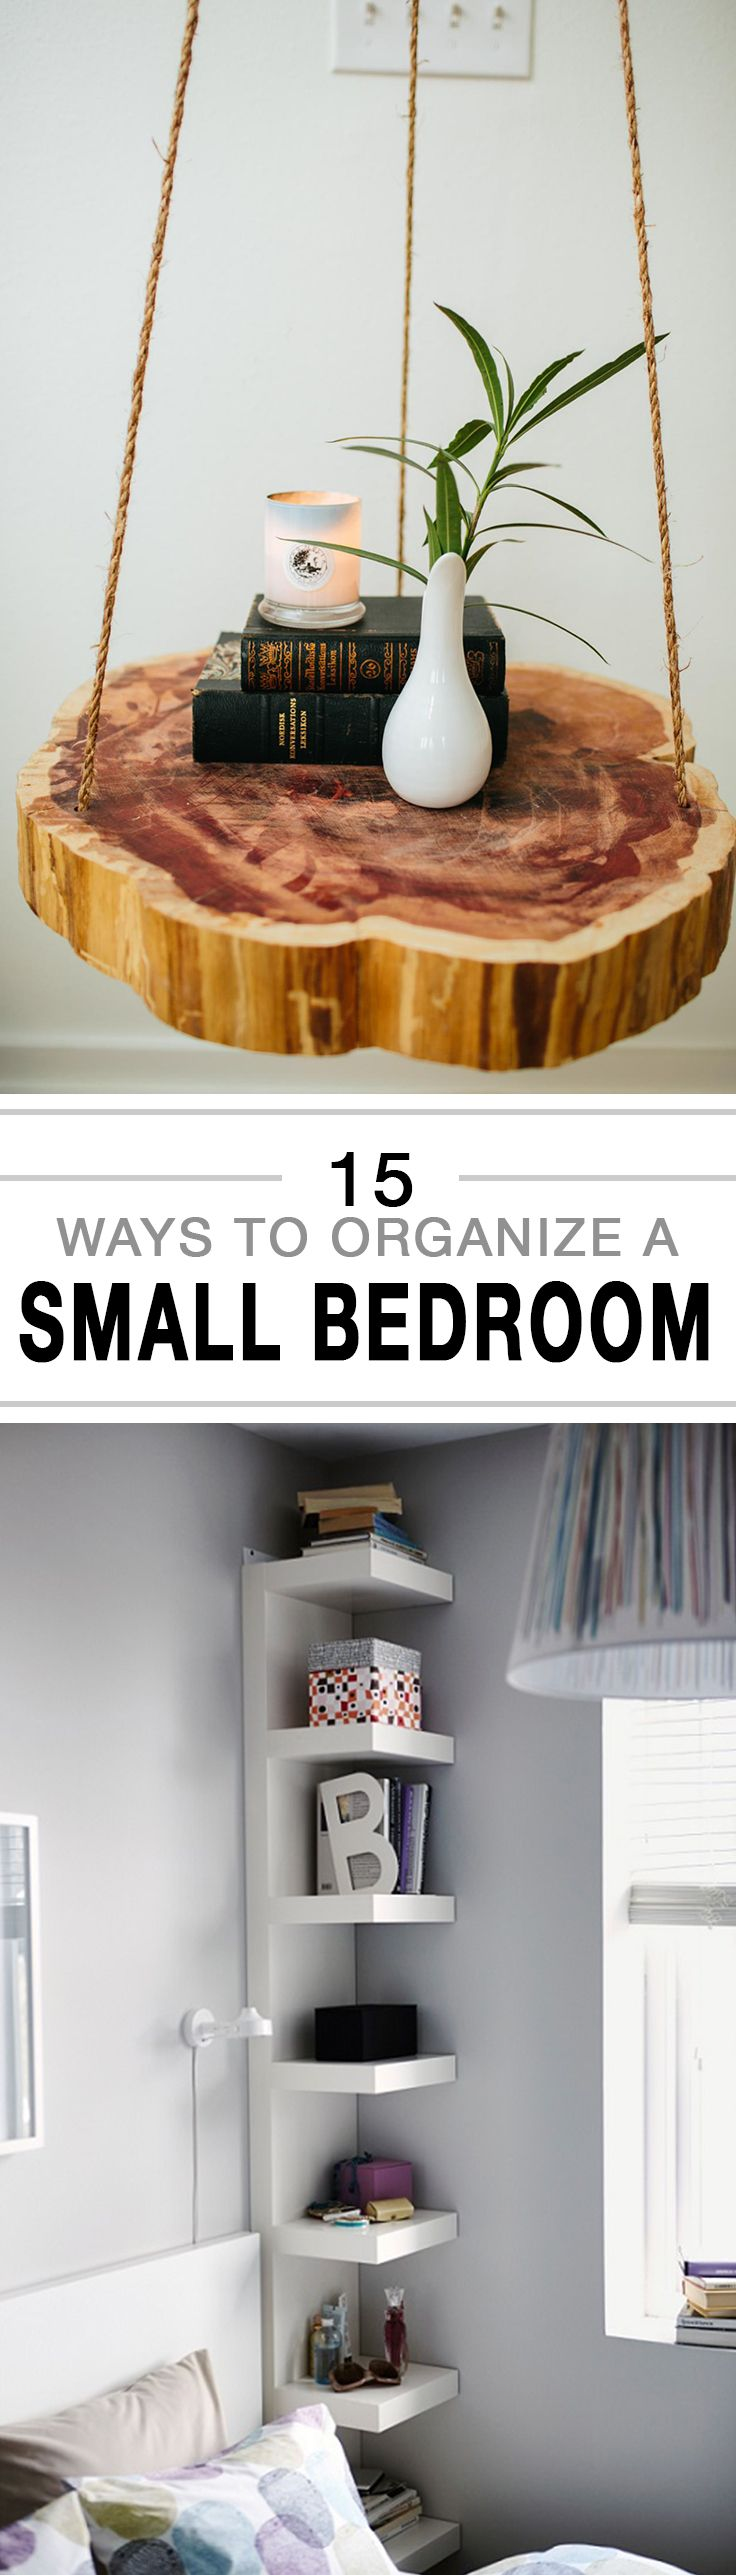 Organizing A Small Bedroom Best 25 Small Bedroom Organization Ideas On Pinterest Small